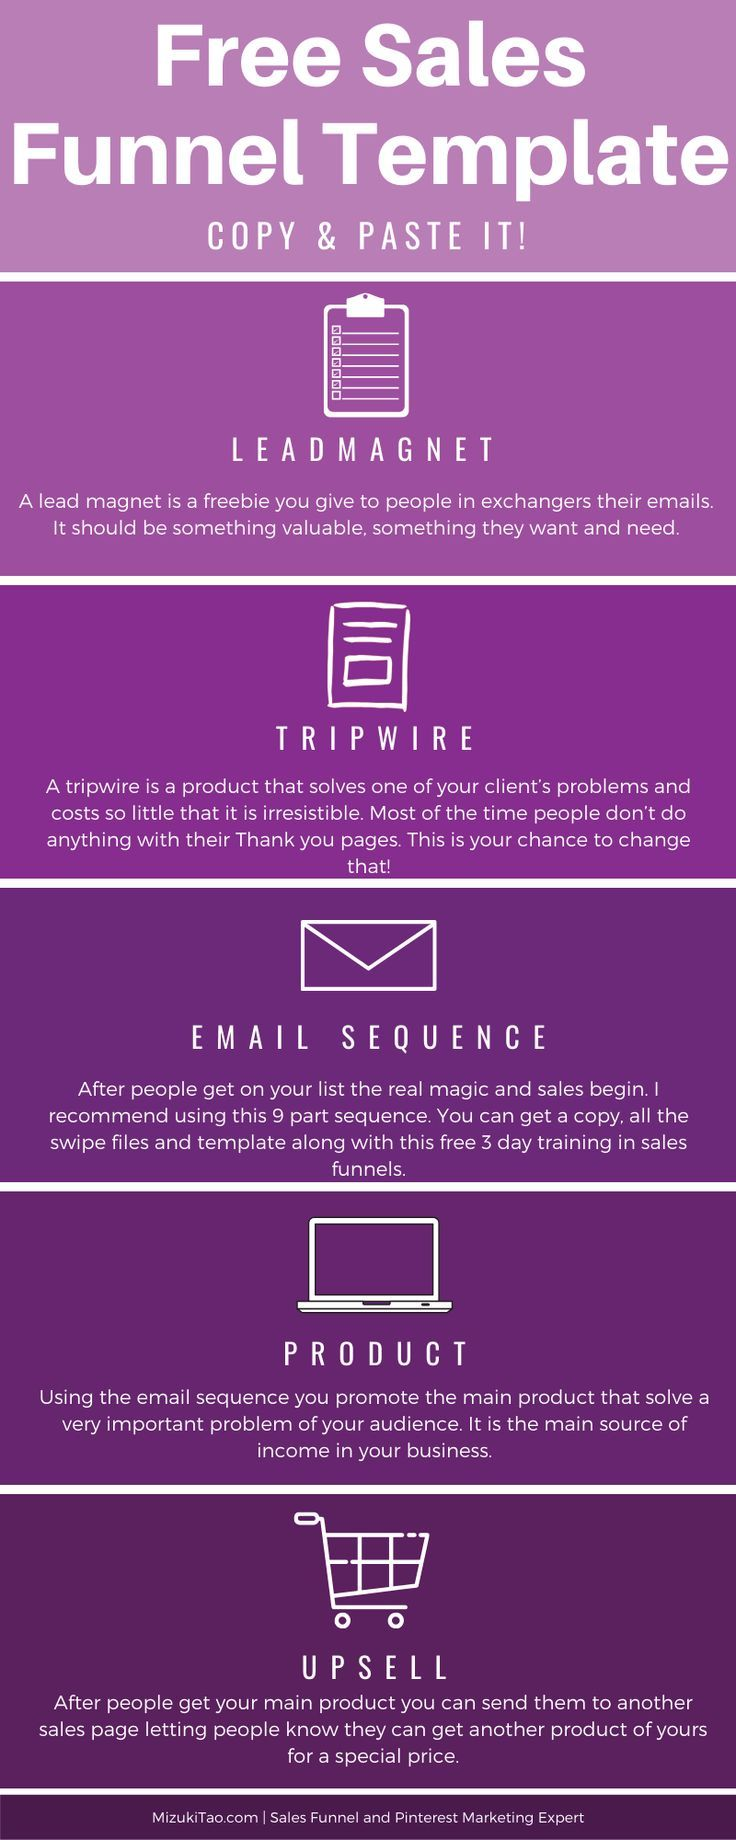 Free Sales Funnel Template For Digital Products Sales Funnel Template Sales Funnel Infographic Sales Funnels